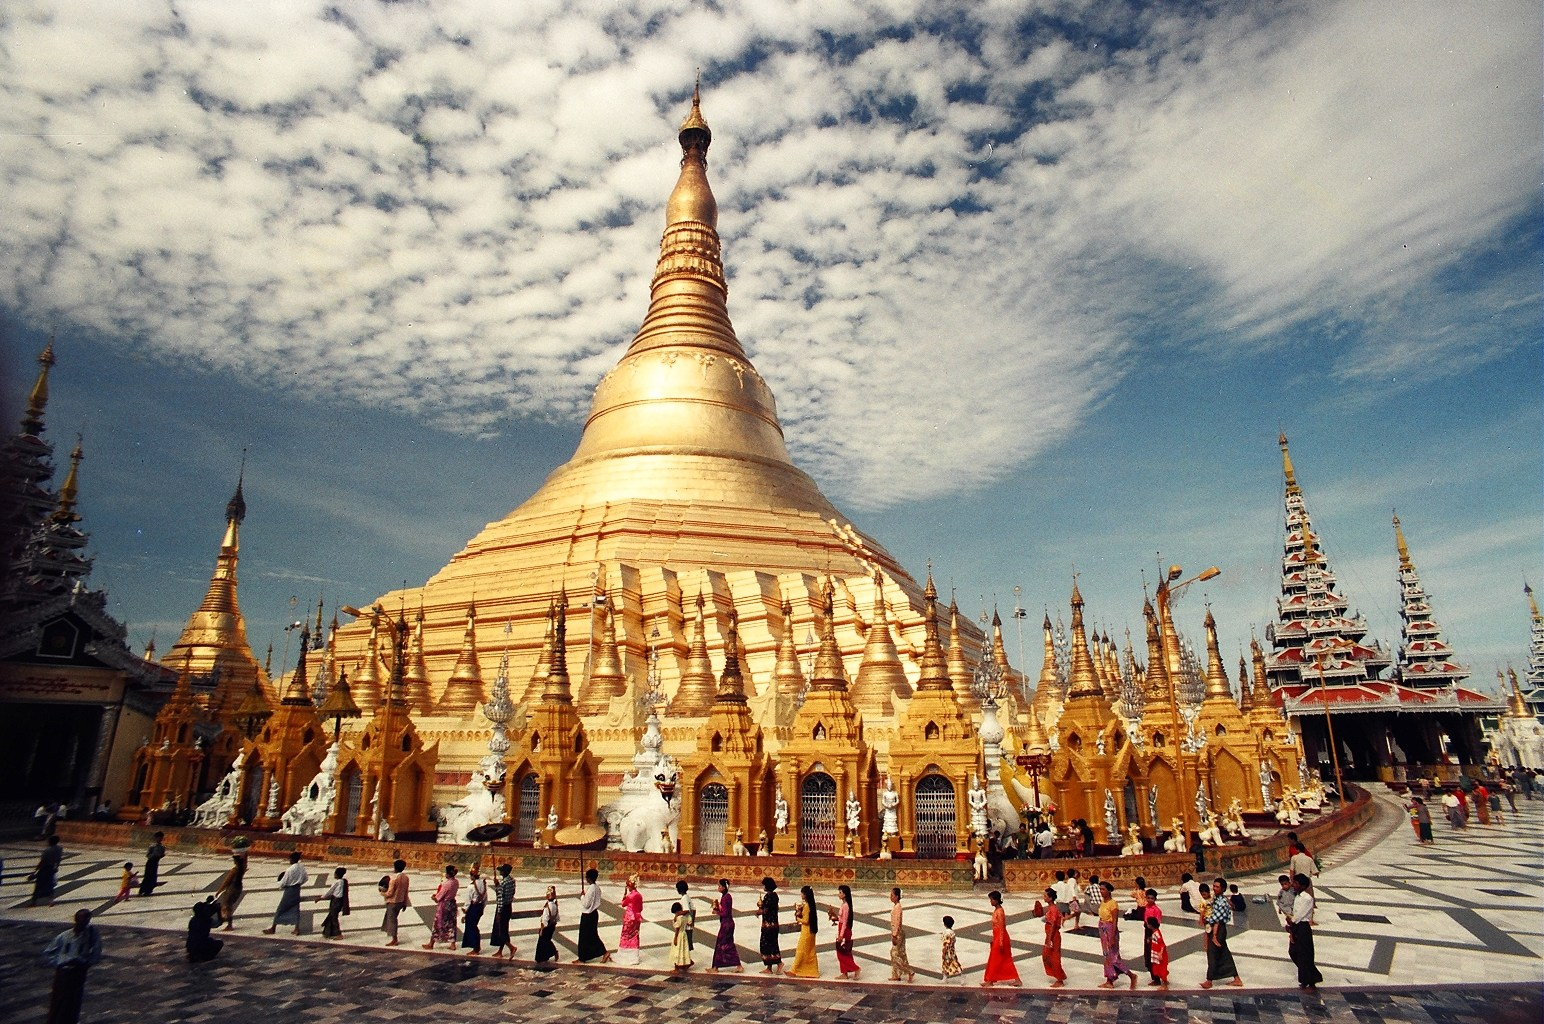 Dress politely and discreetly when visiting Myanmar temples